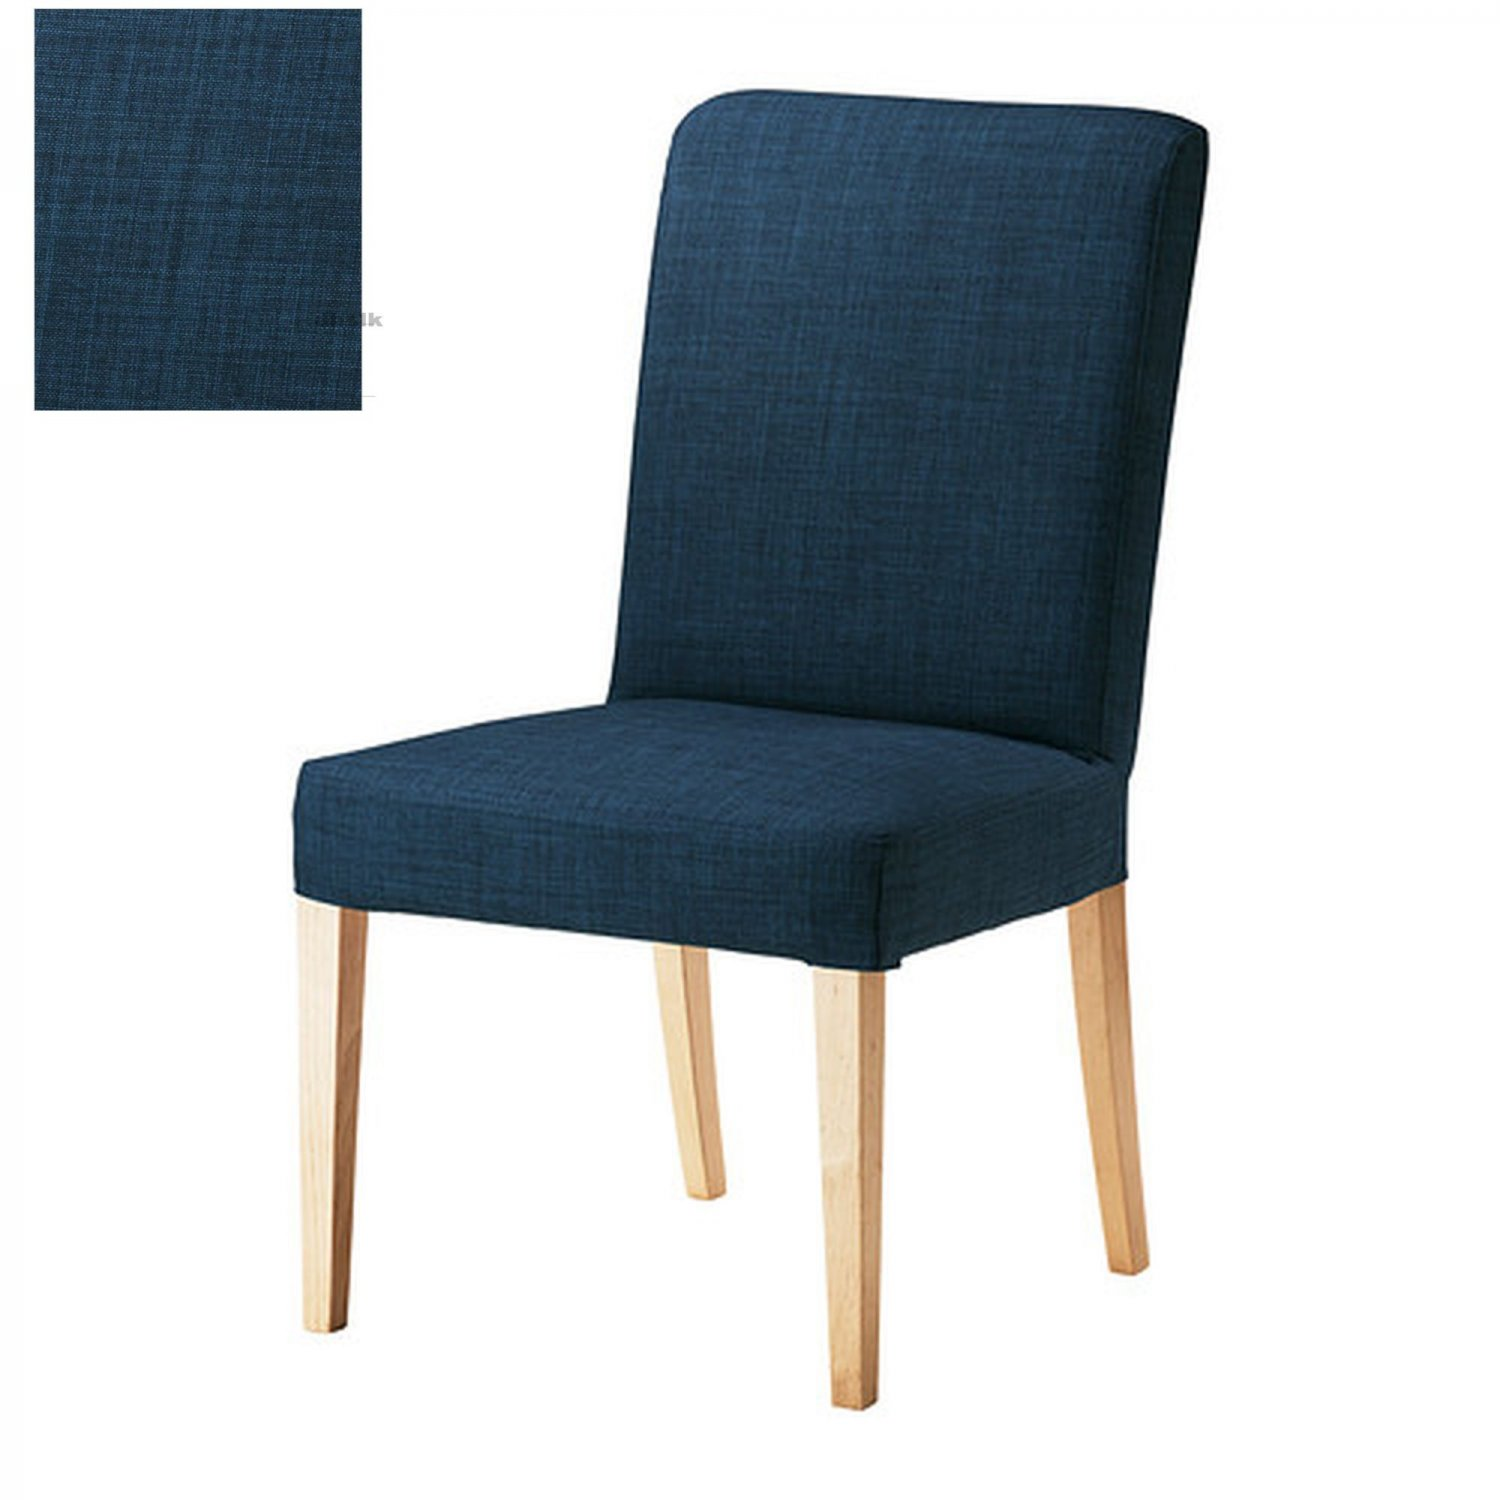 IKEA HENRIKSDAL SKIFTEBO Chair SLIPCOVER Cover 21quot 54cm BLUE : 53c9495d24e4654622b from rock-paper-scissors.ecrater.com size 1500 x 1500 jpeg 129kB